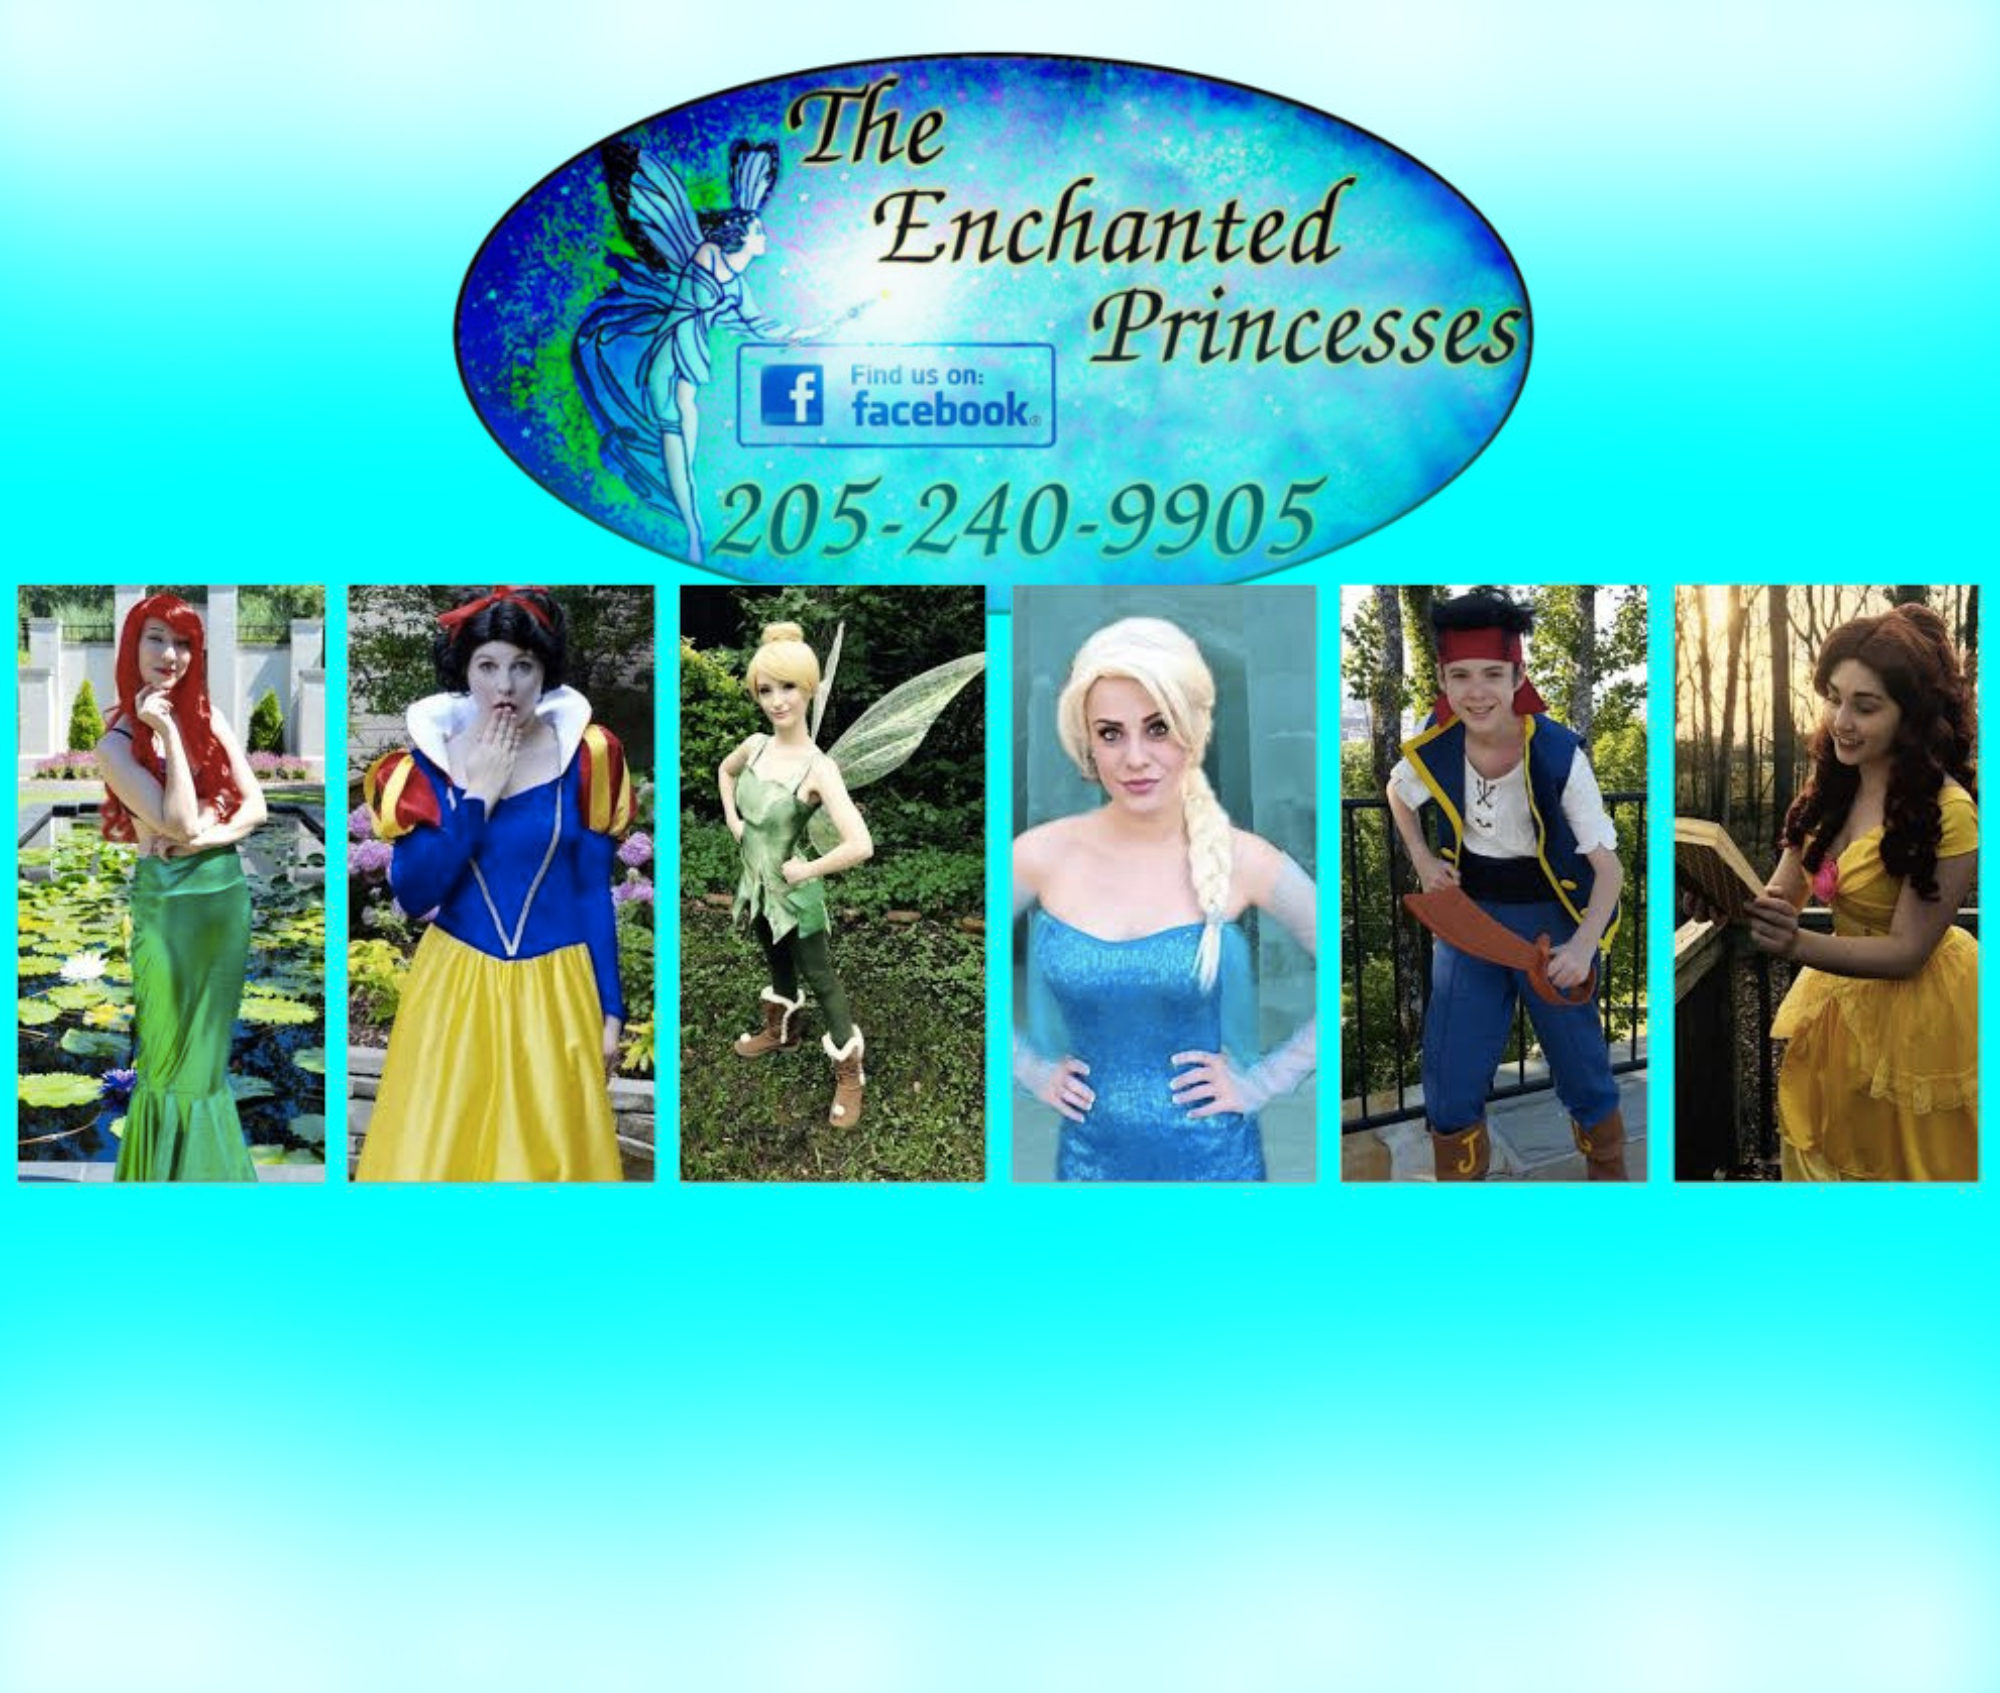 The Enchanted Princesses